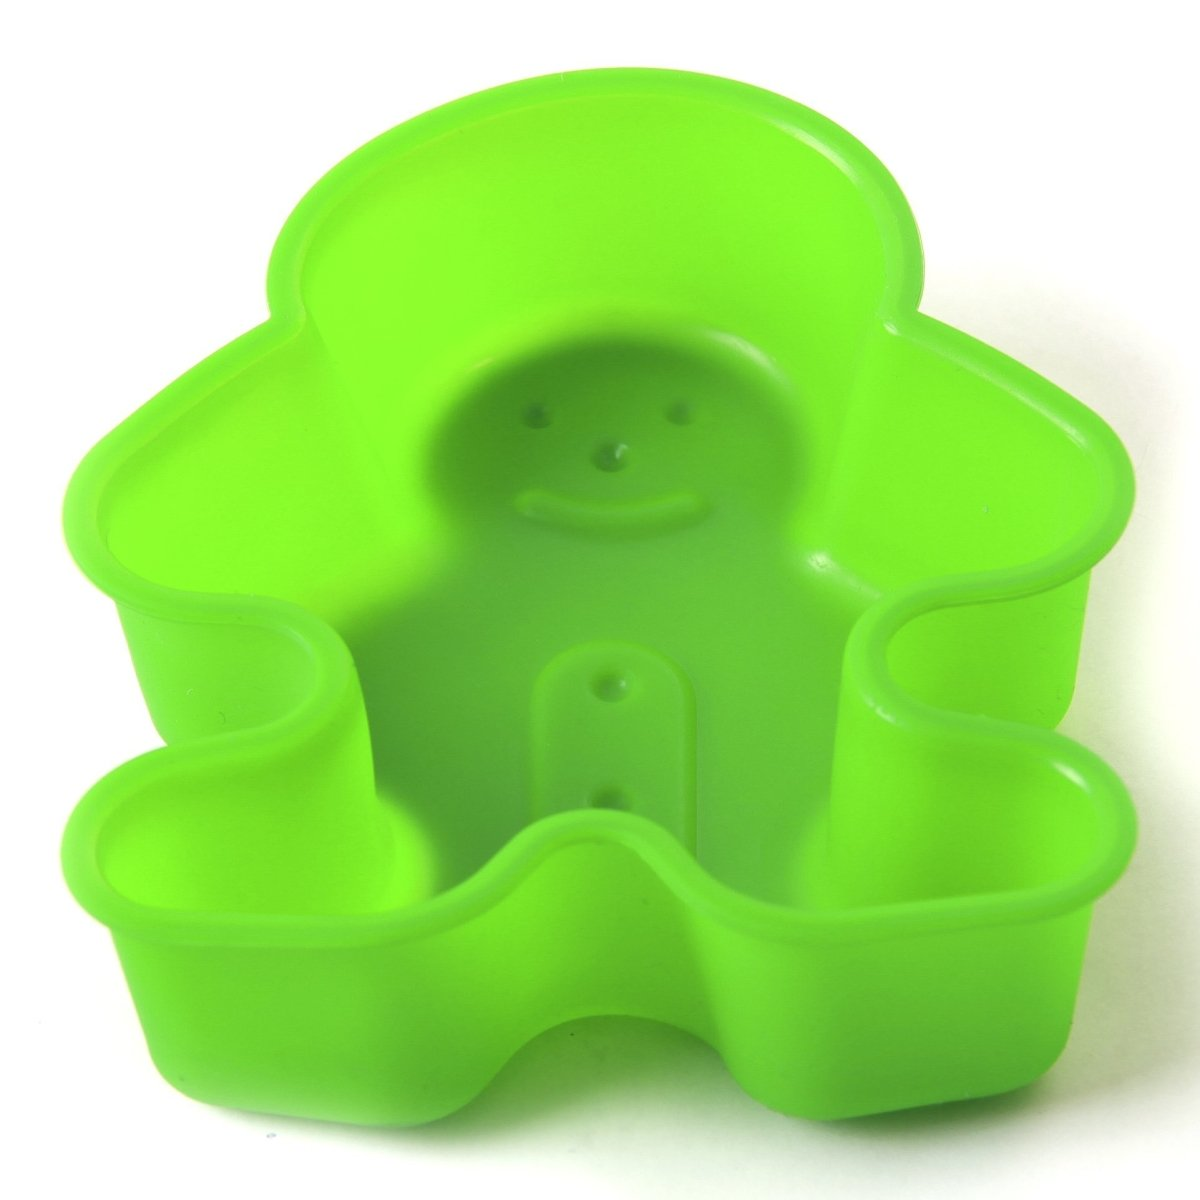 Gingerbread Man Cake/Jelly/Soap Silicone Soap Mould B0012 - Mystic Moments UK